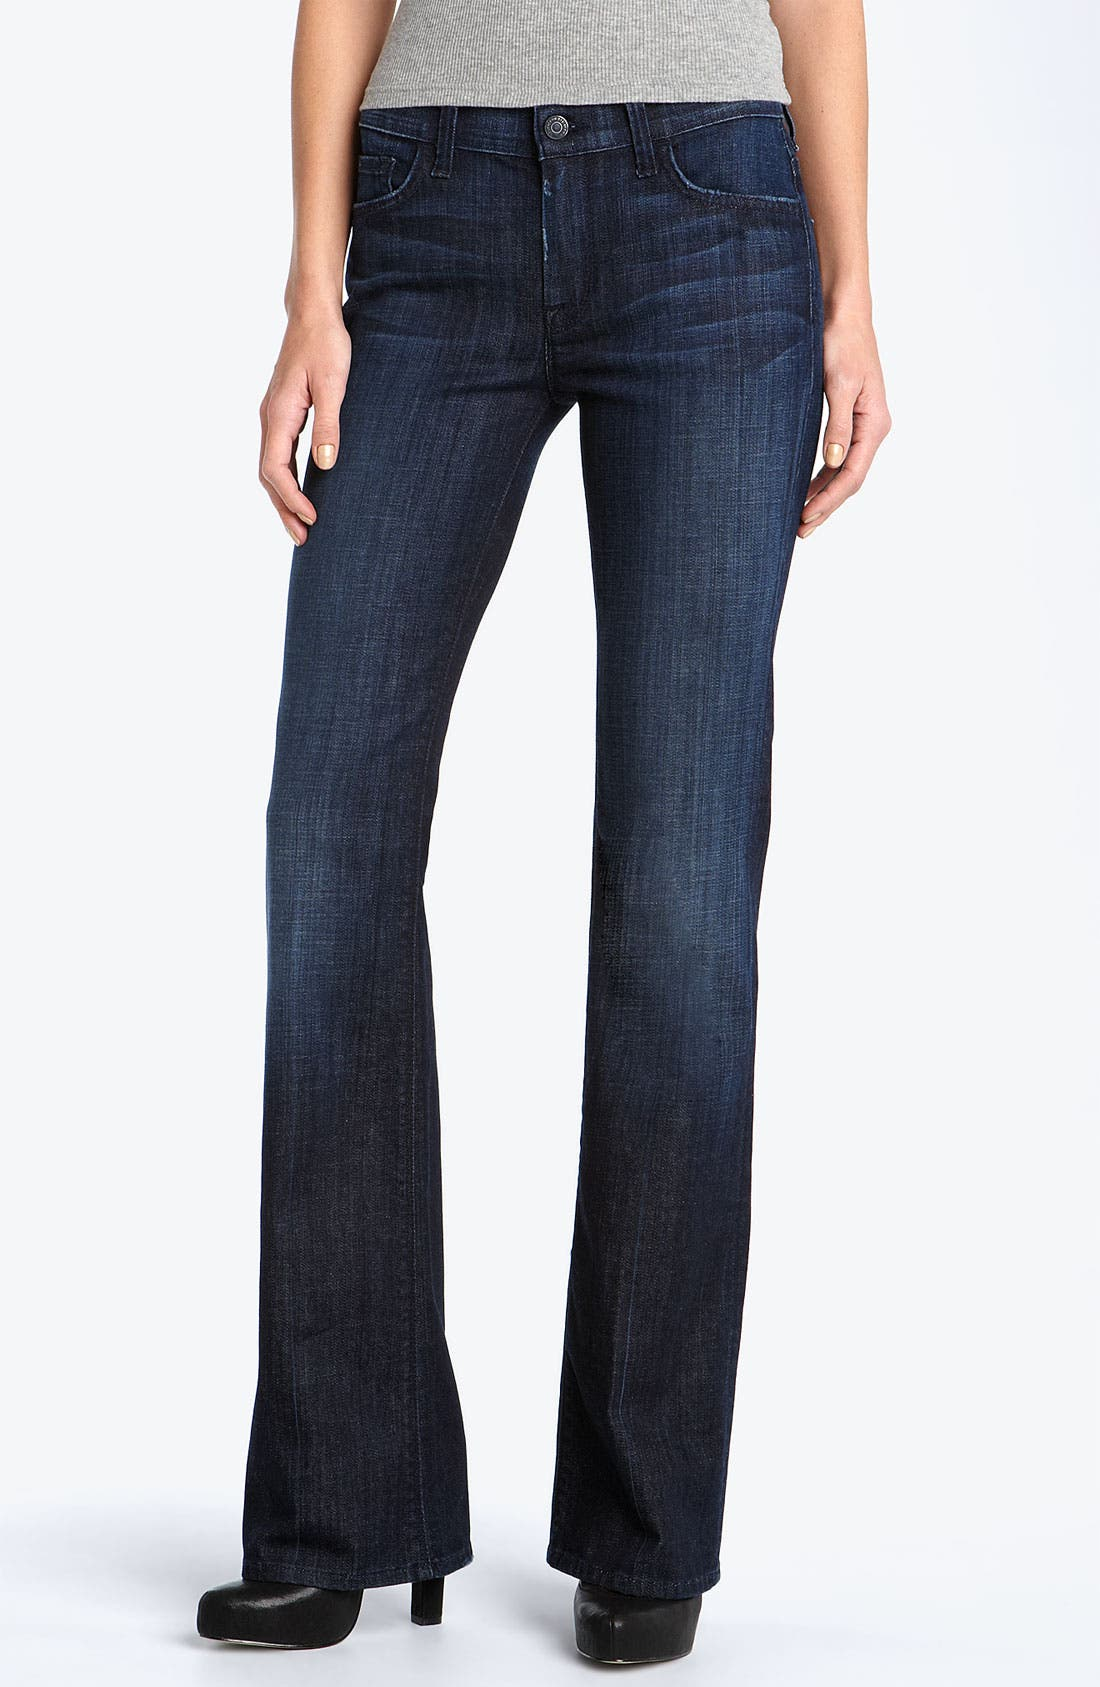 Alternate Image 1 Selected - 7 For All Mankind® Mid Rise Bootcut Stretch Jeans (Los Angeles Dark)